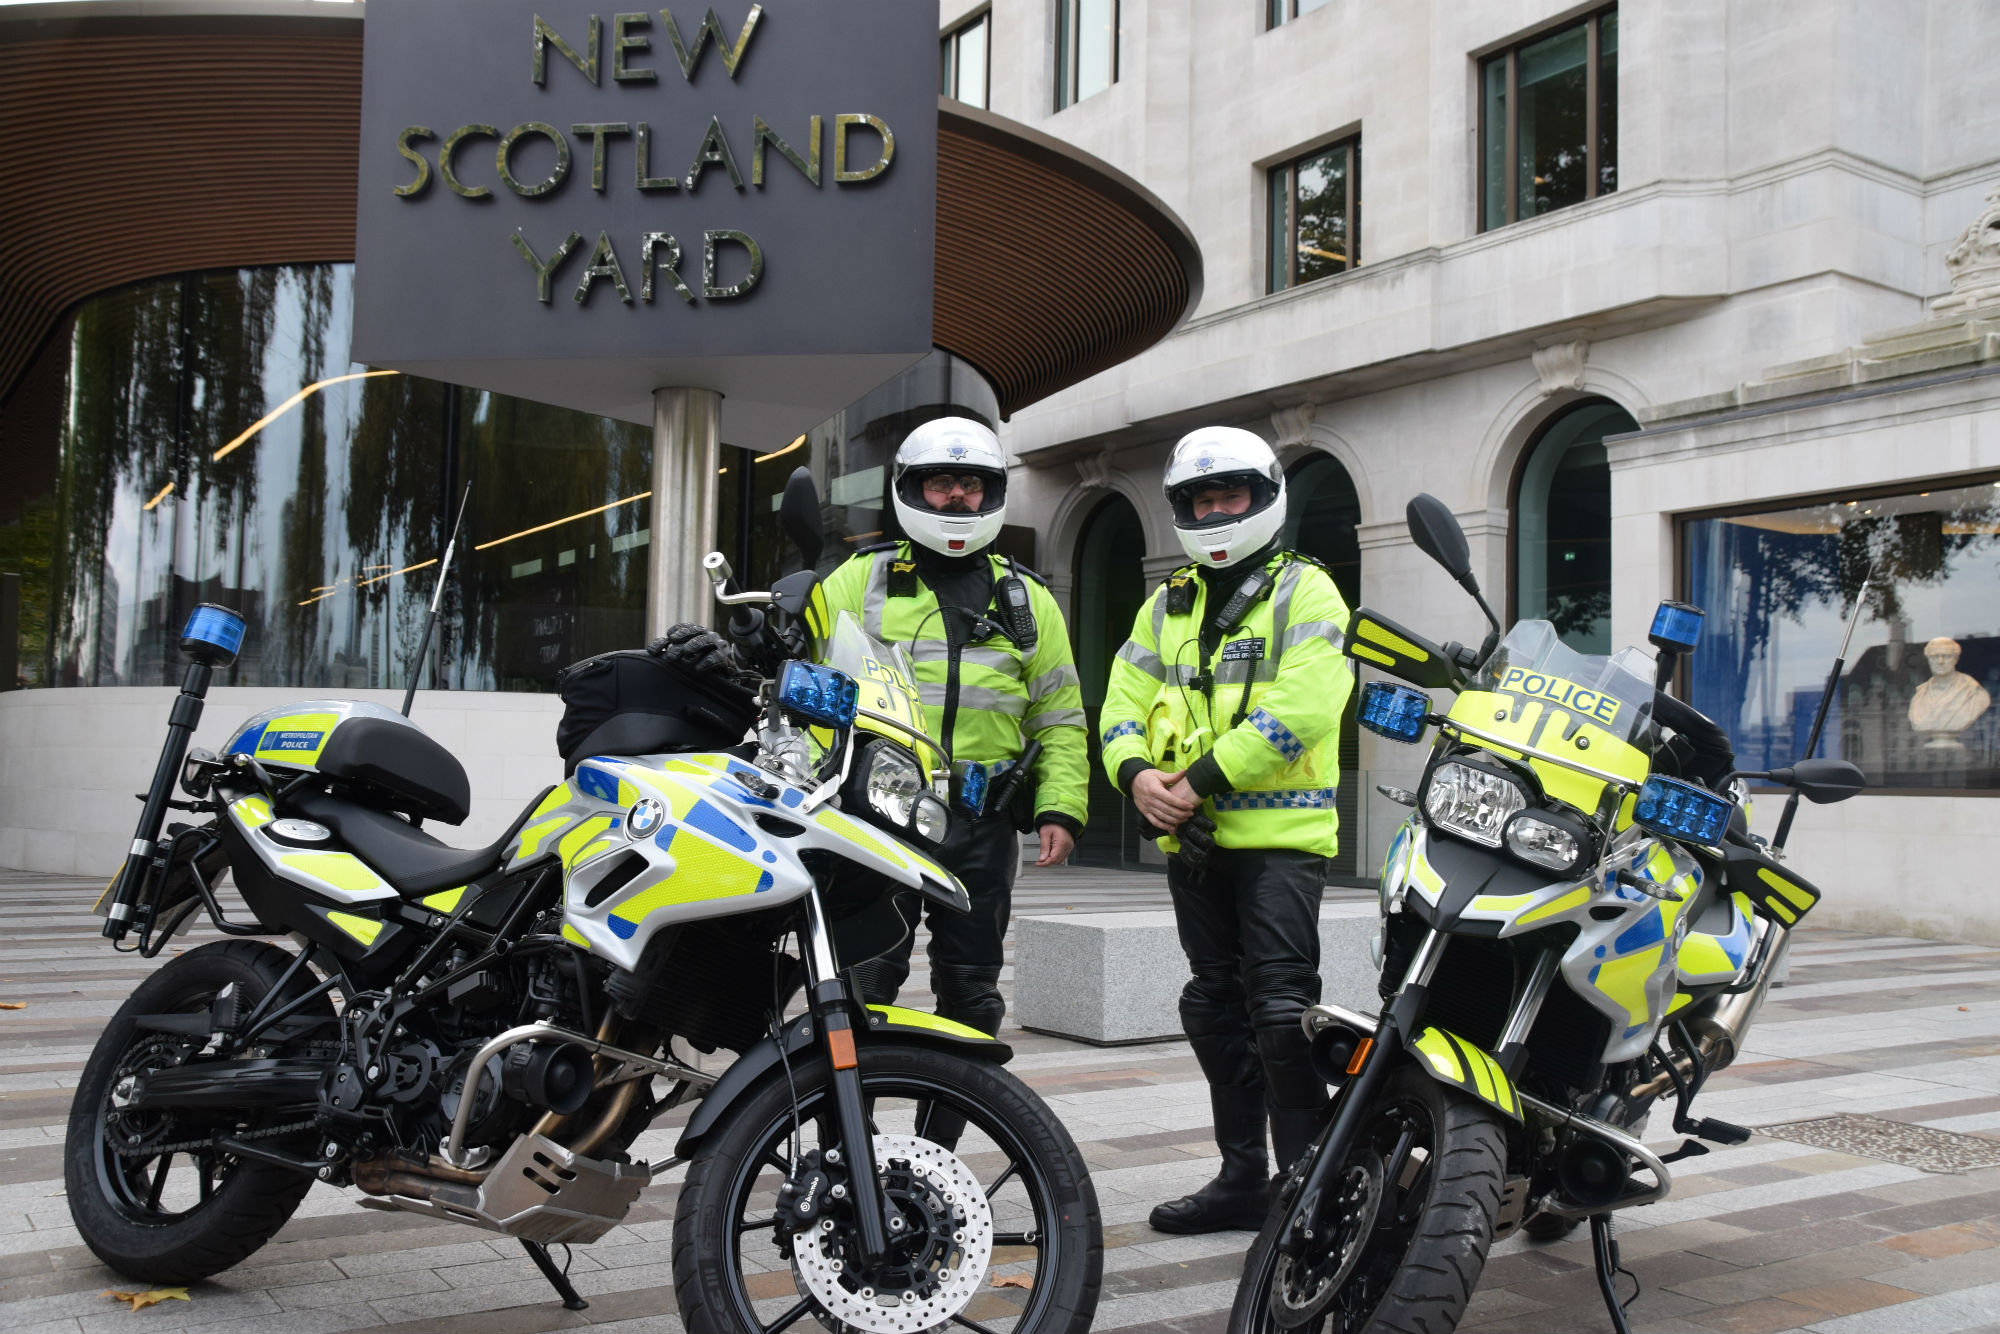 Moped crime – finally some good news